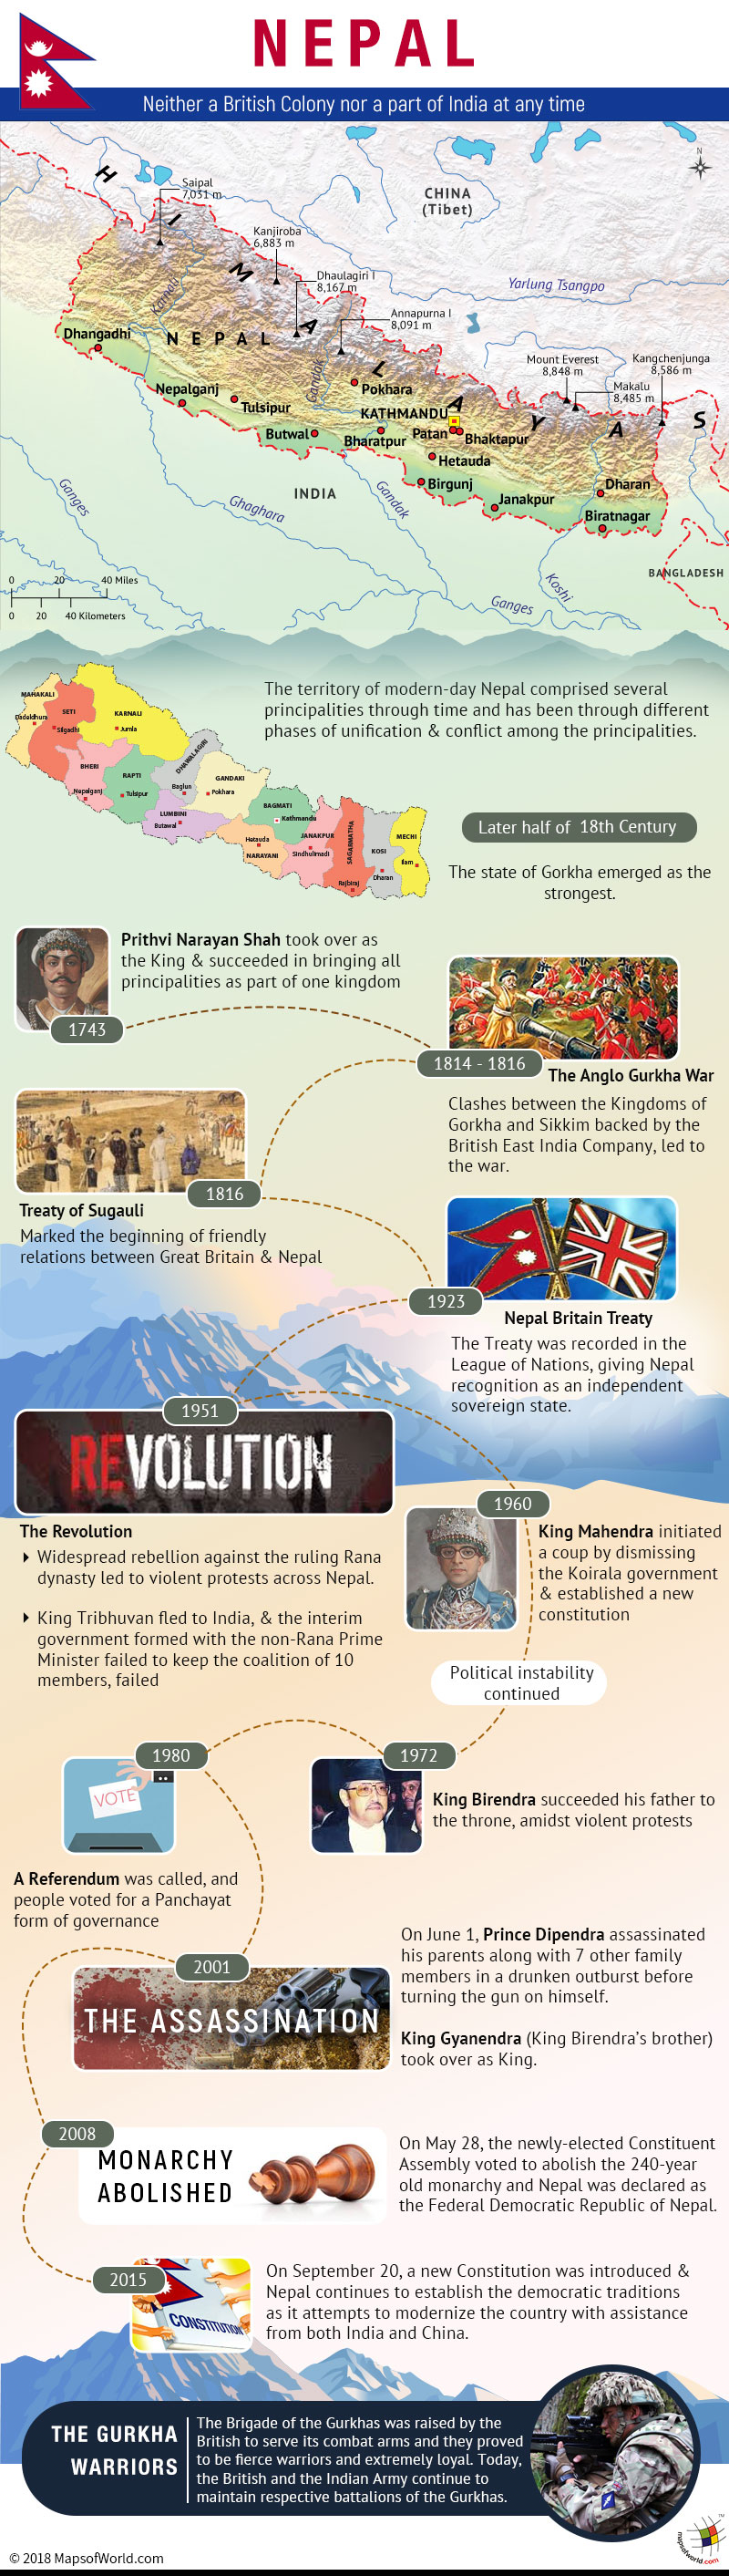 Infographic - Was Nepal ever a part of British Empire or India